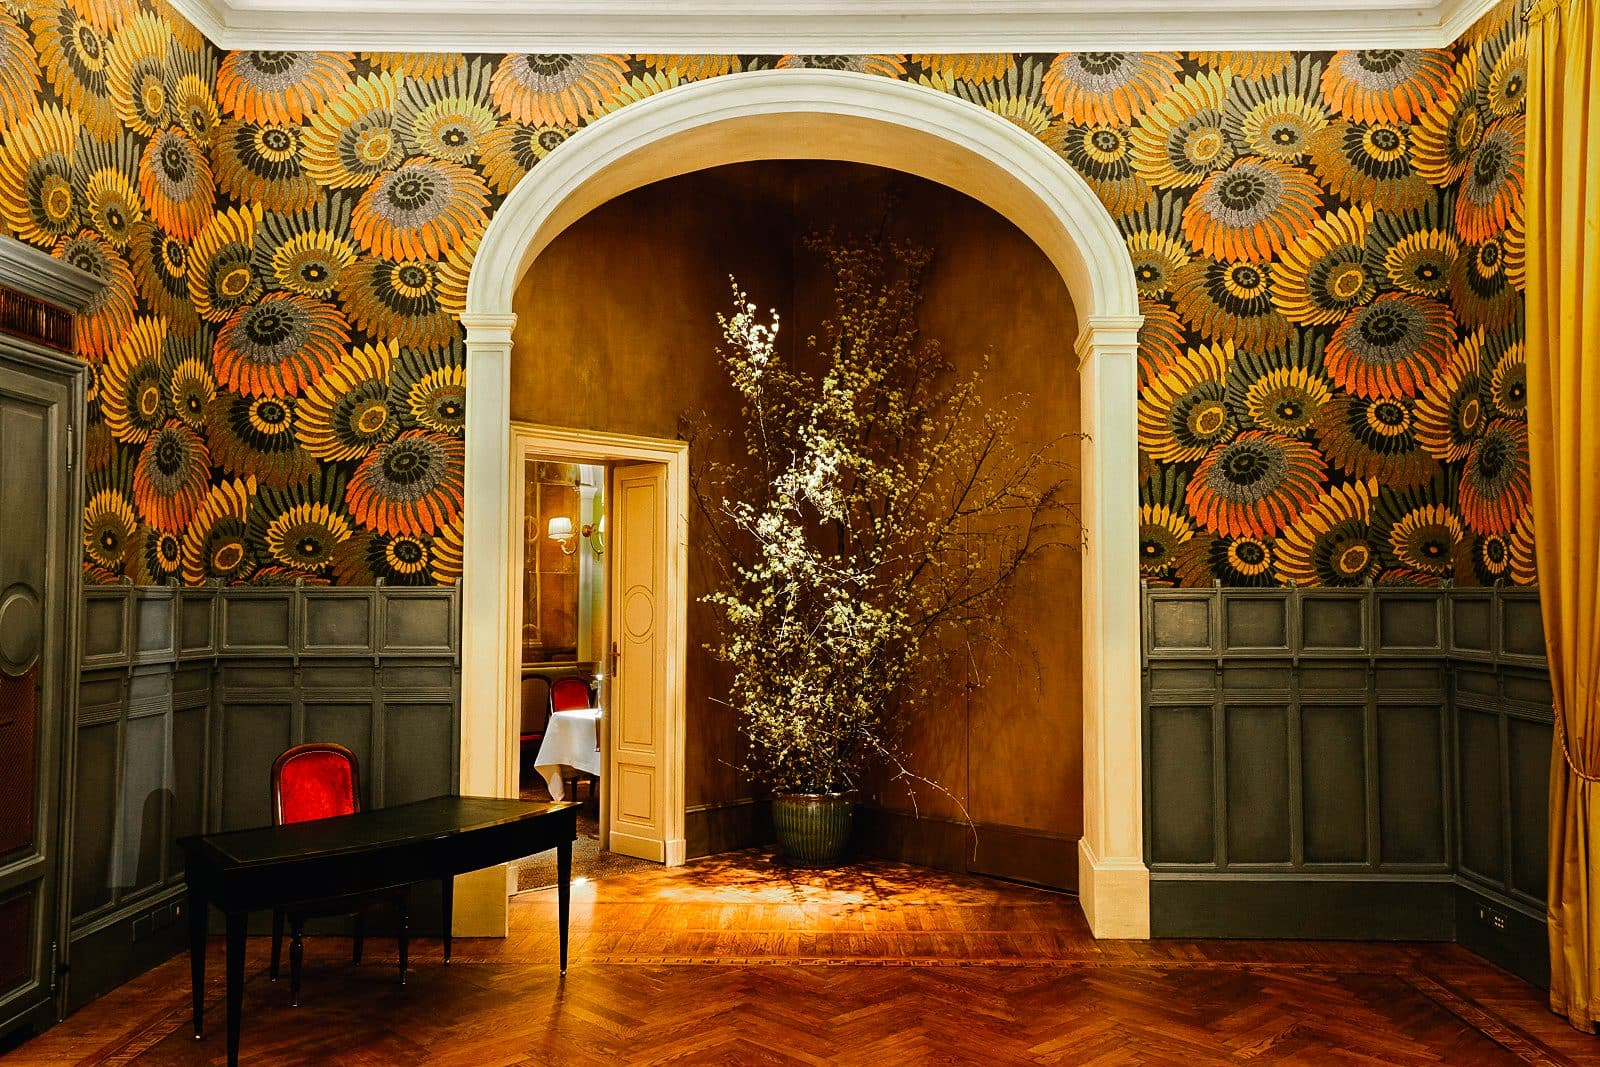 The green and orange patterned wallpaper and wood panelling inside Cracco